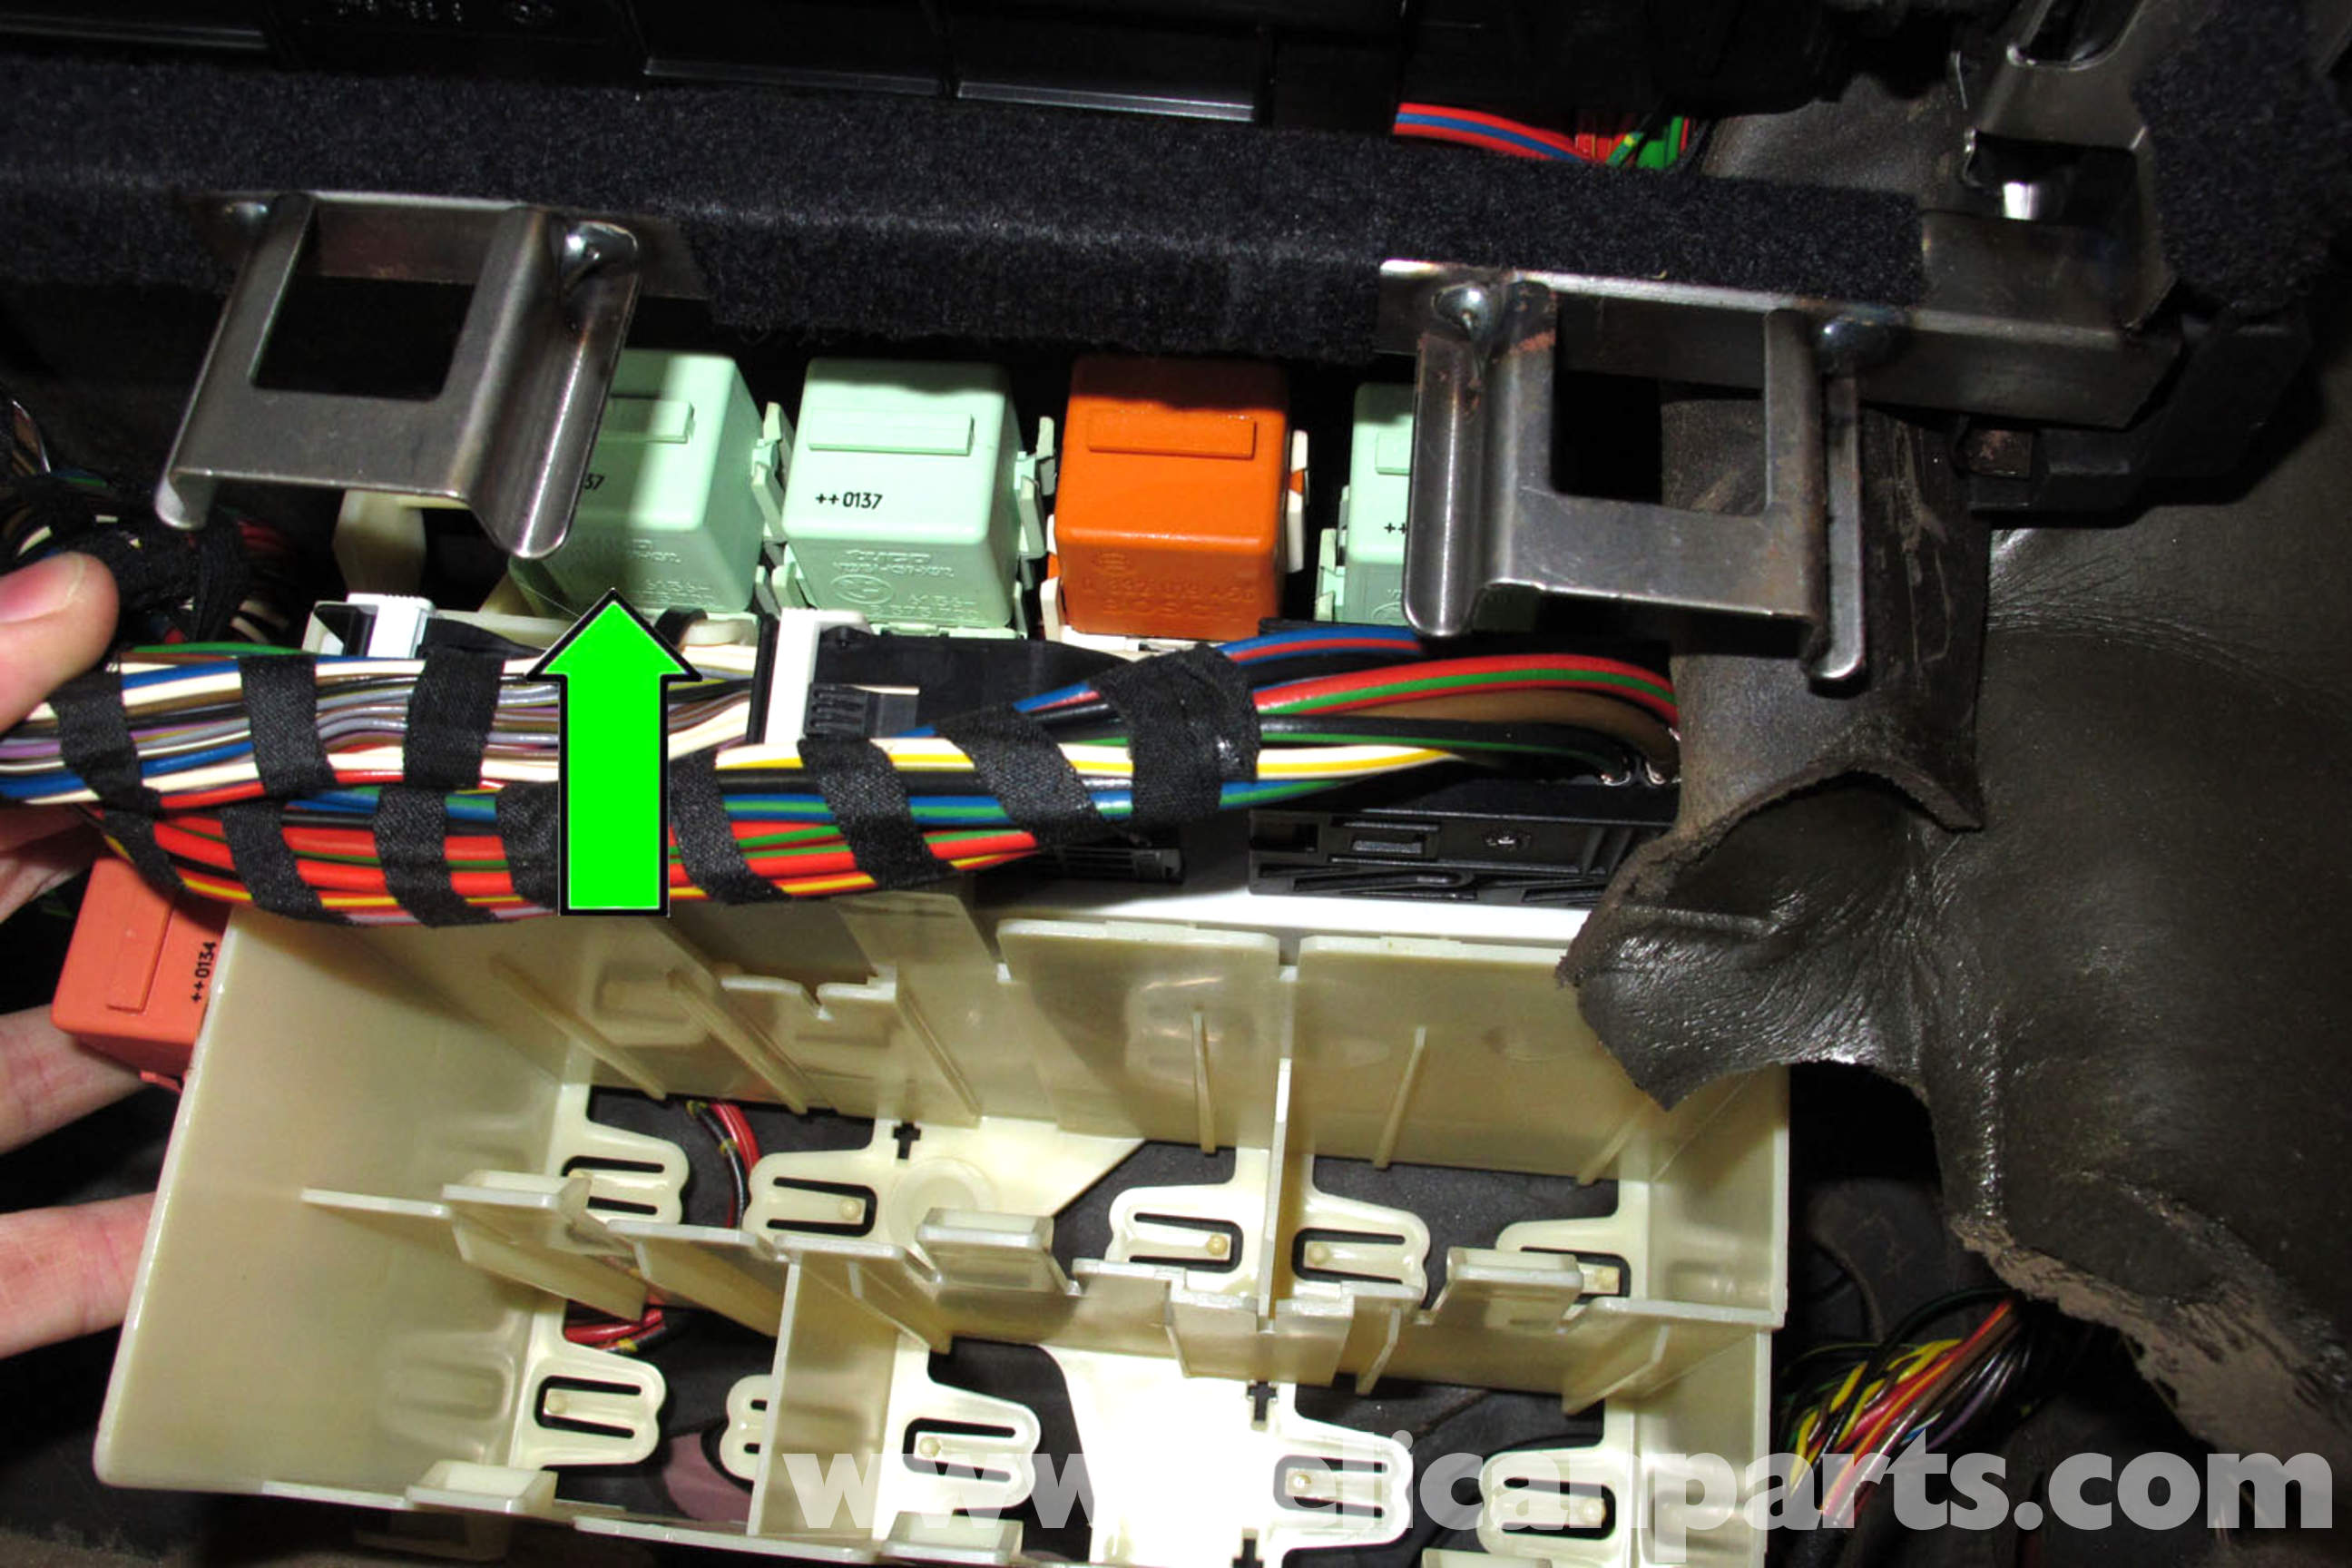 e46 wiring harness 2002 bmw e46 m3 wiring harness #14